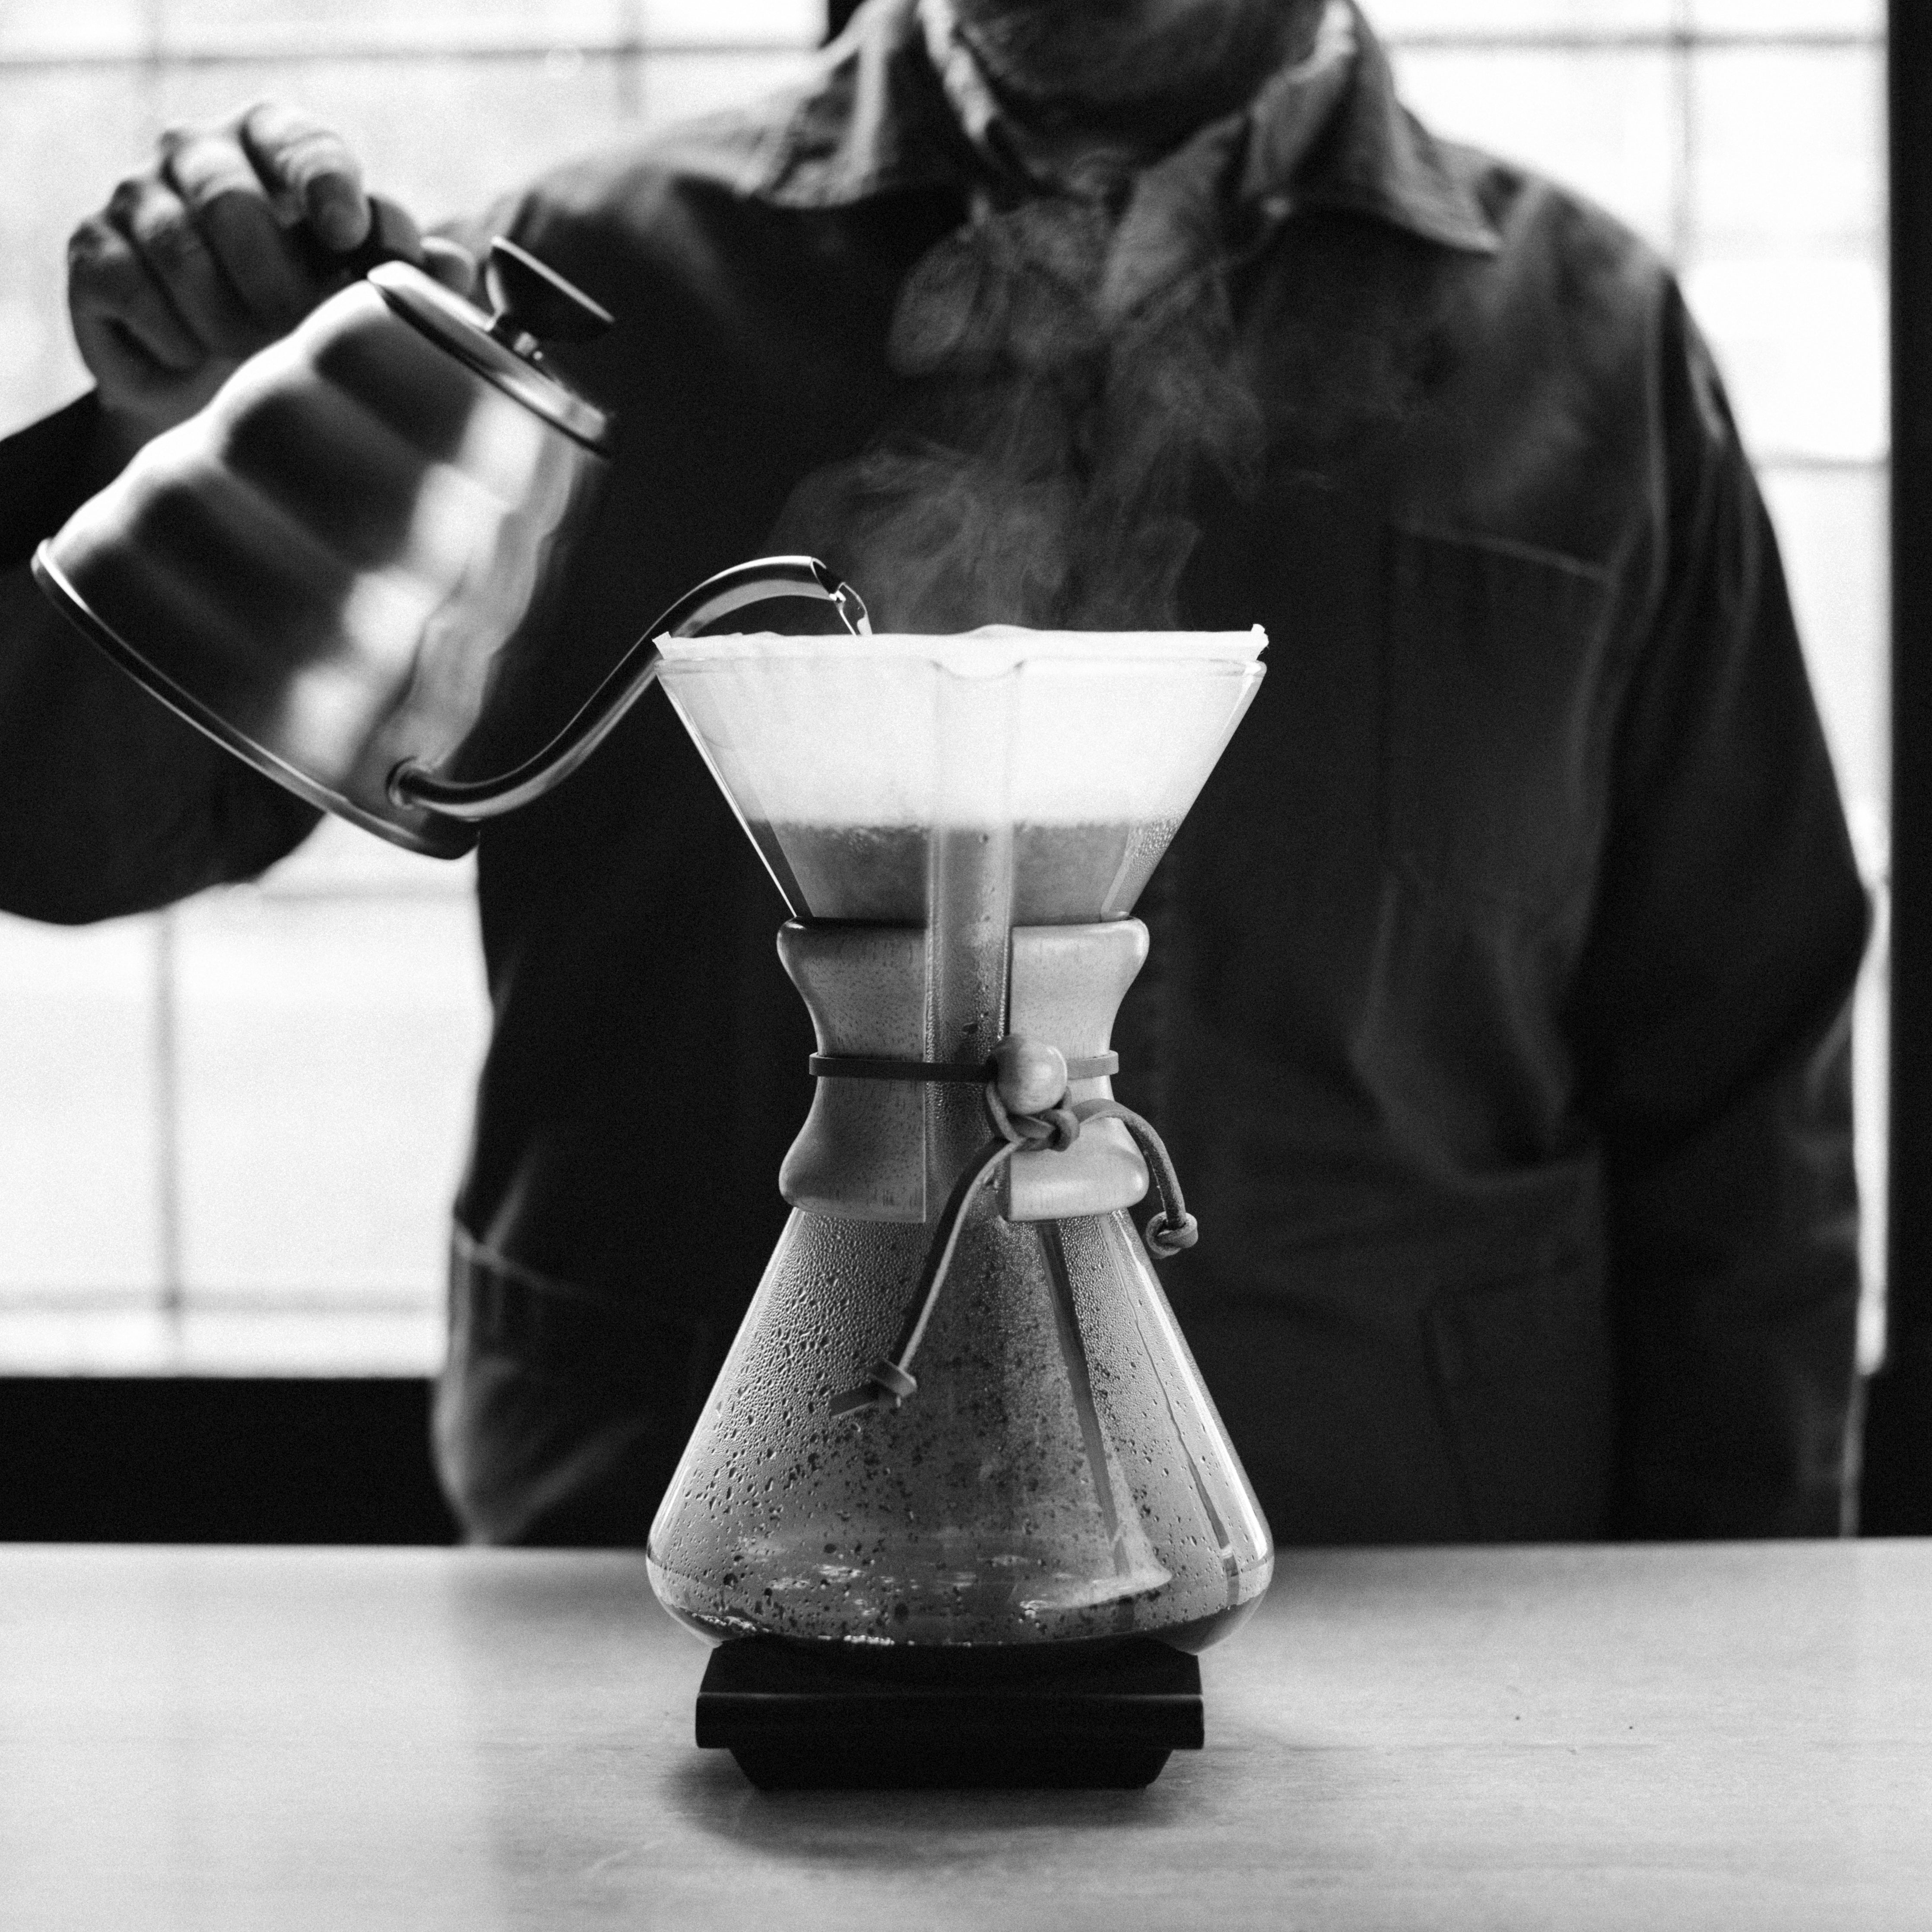 Making a coffee with a Chemex